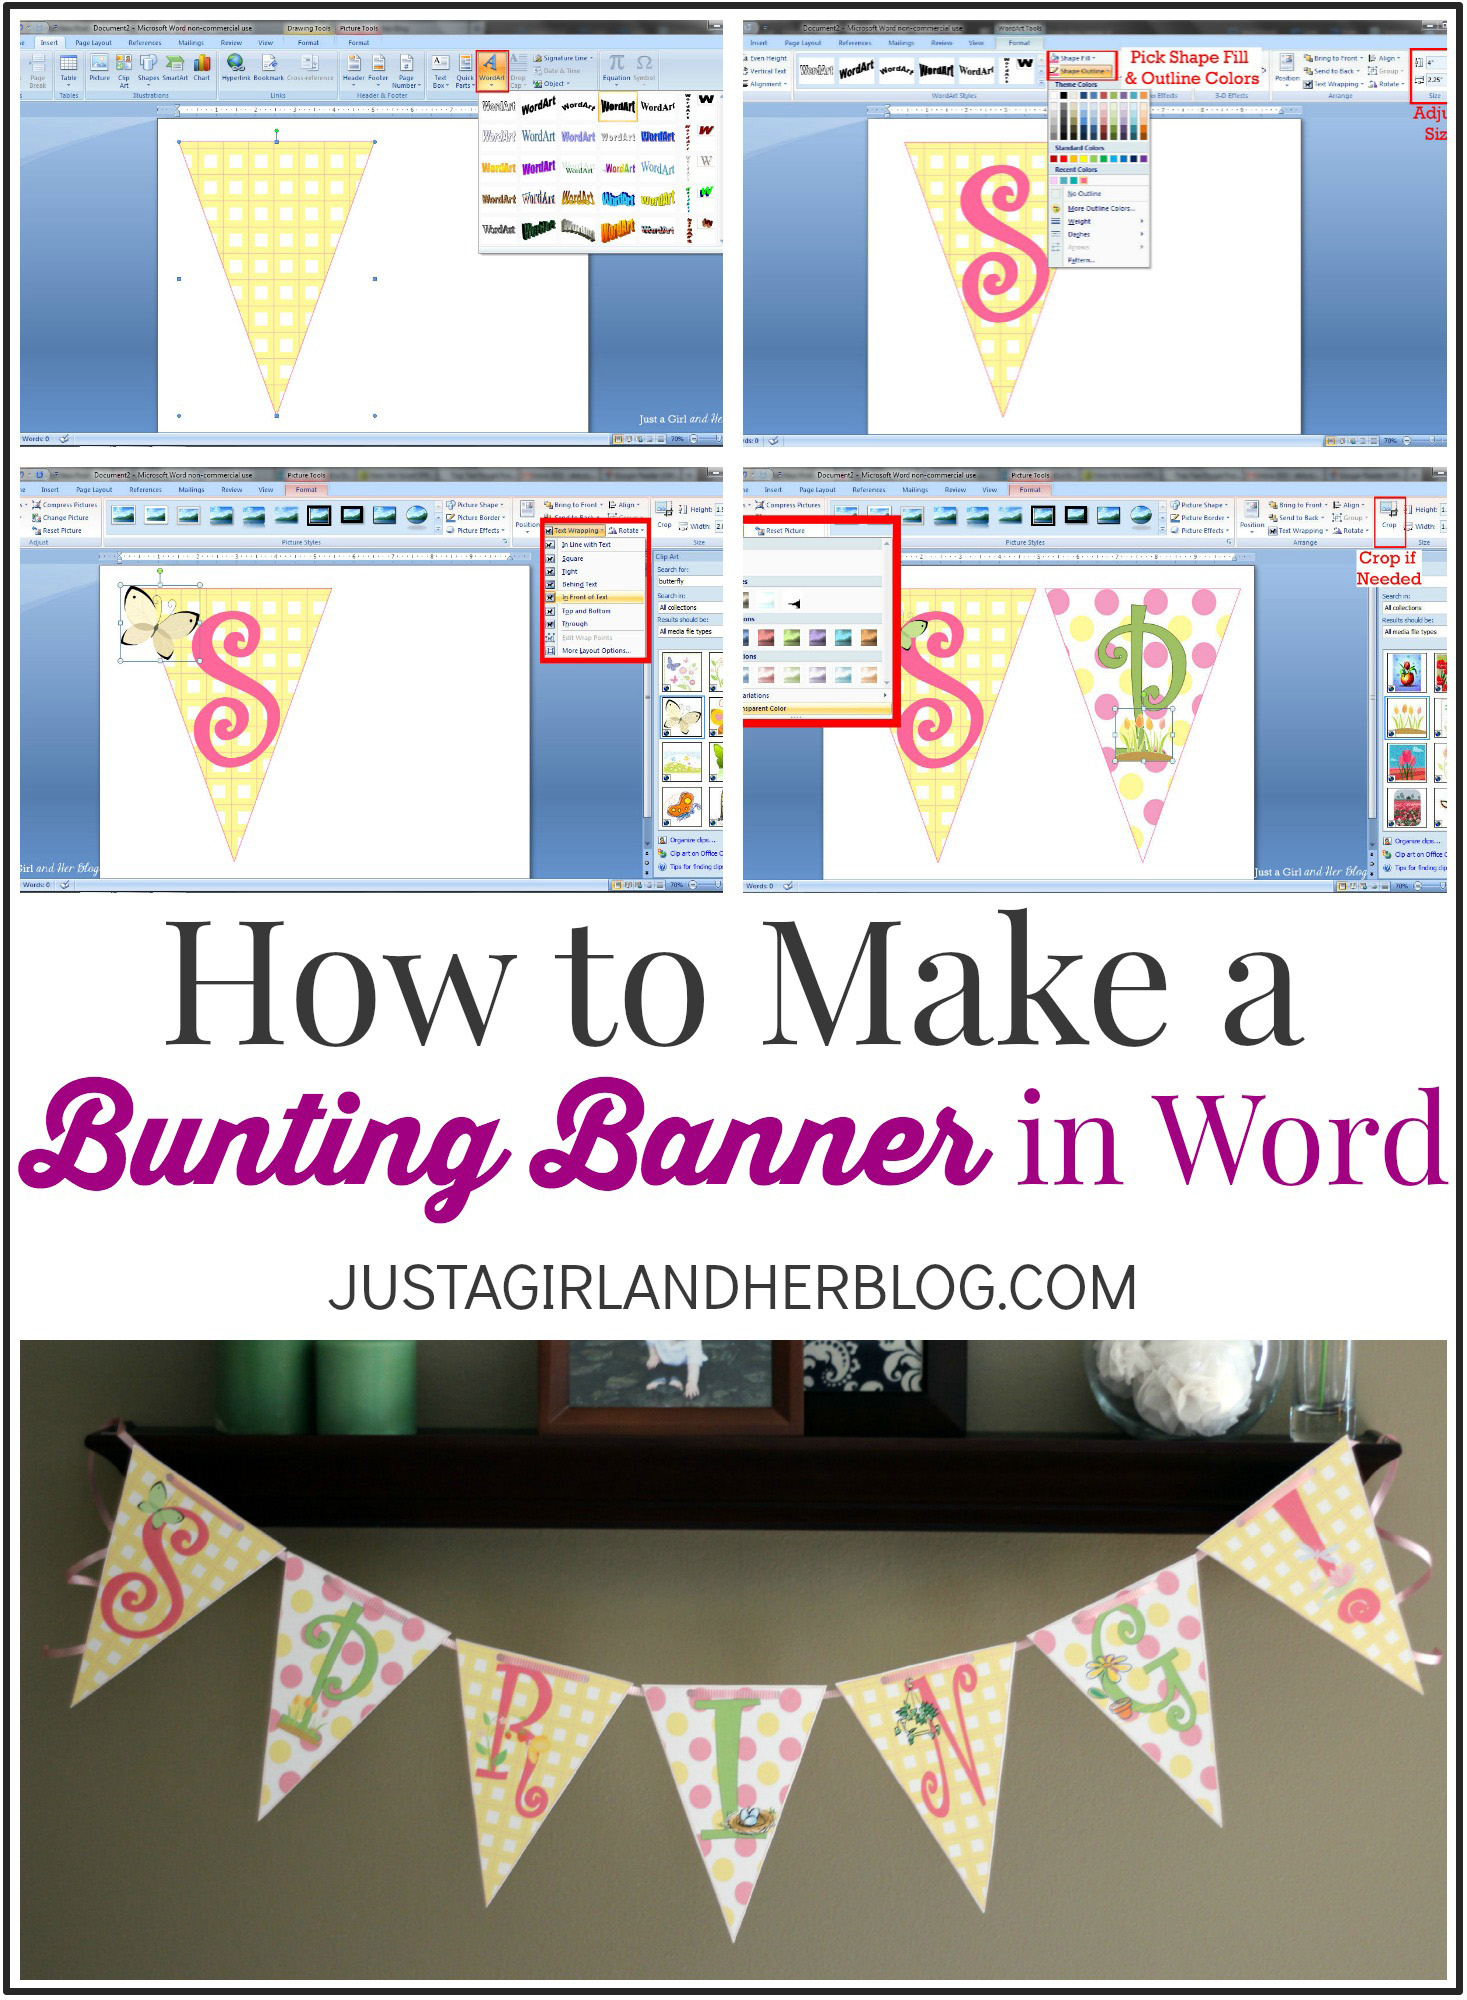 How To Make A Bunting Banner In Word {With Clip Art Tips And Tricks} - Free Printable Banner Maker